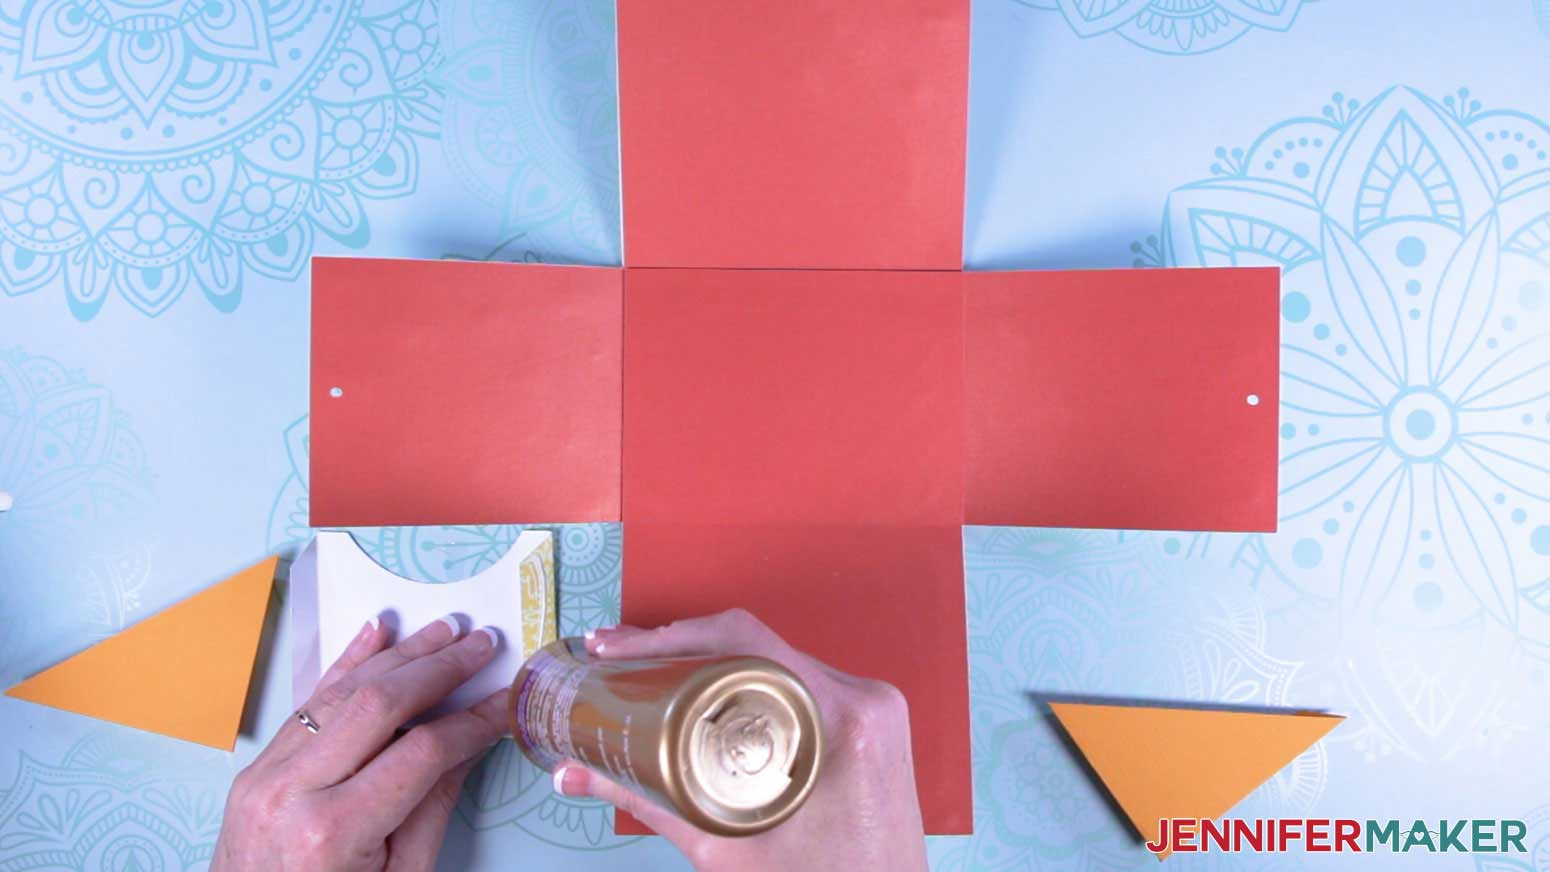 Apply glue to the tabs of the pockets of the explosion mug gift boxes